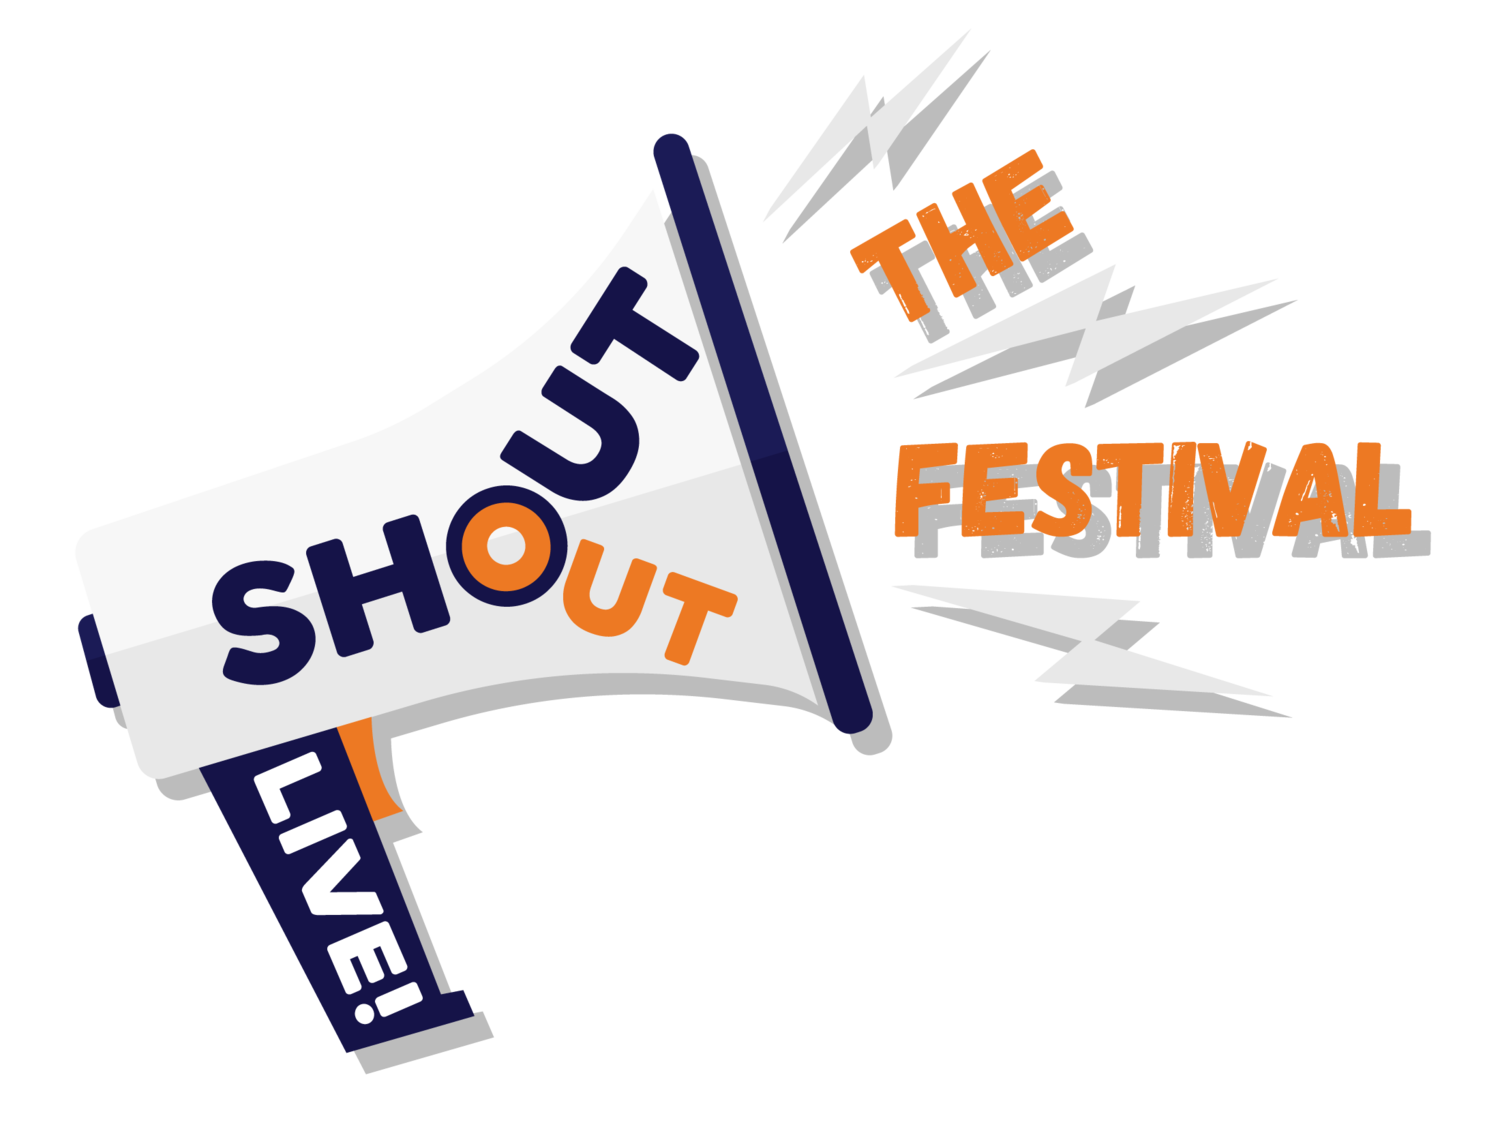 ShoutOut Live! The Festival